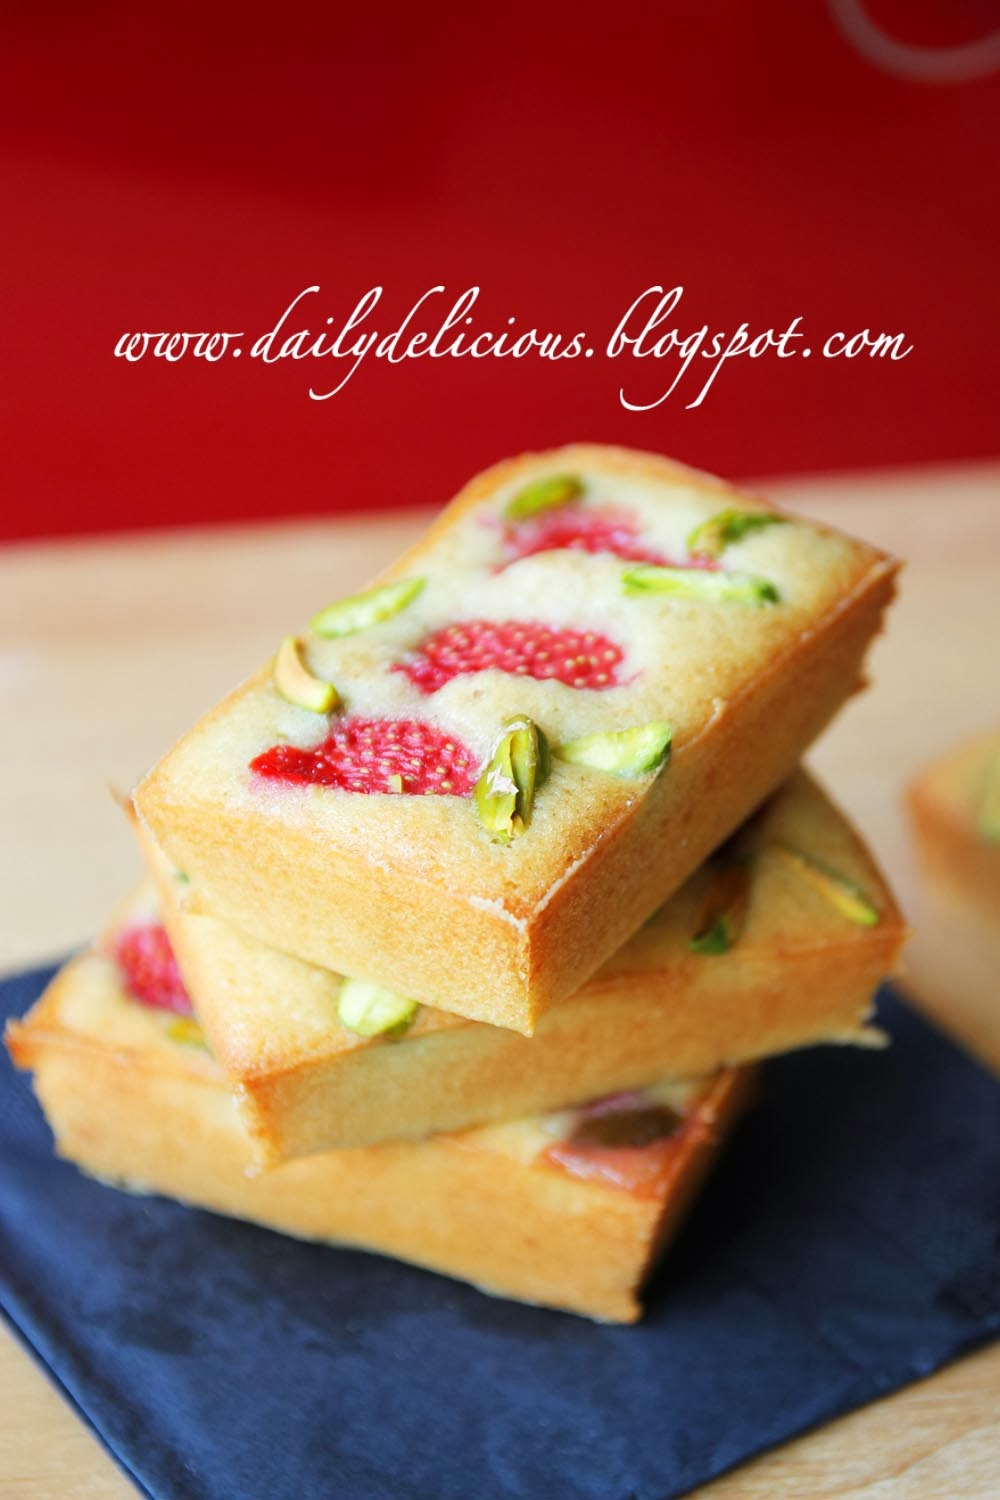 dailydelicious  easy daily bake  strawberry and pistachio